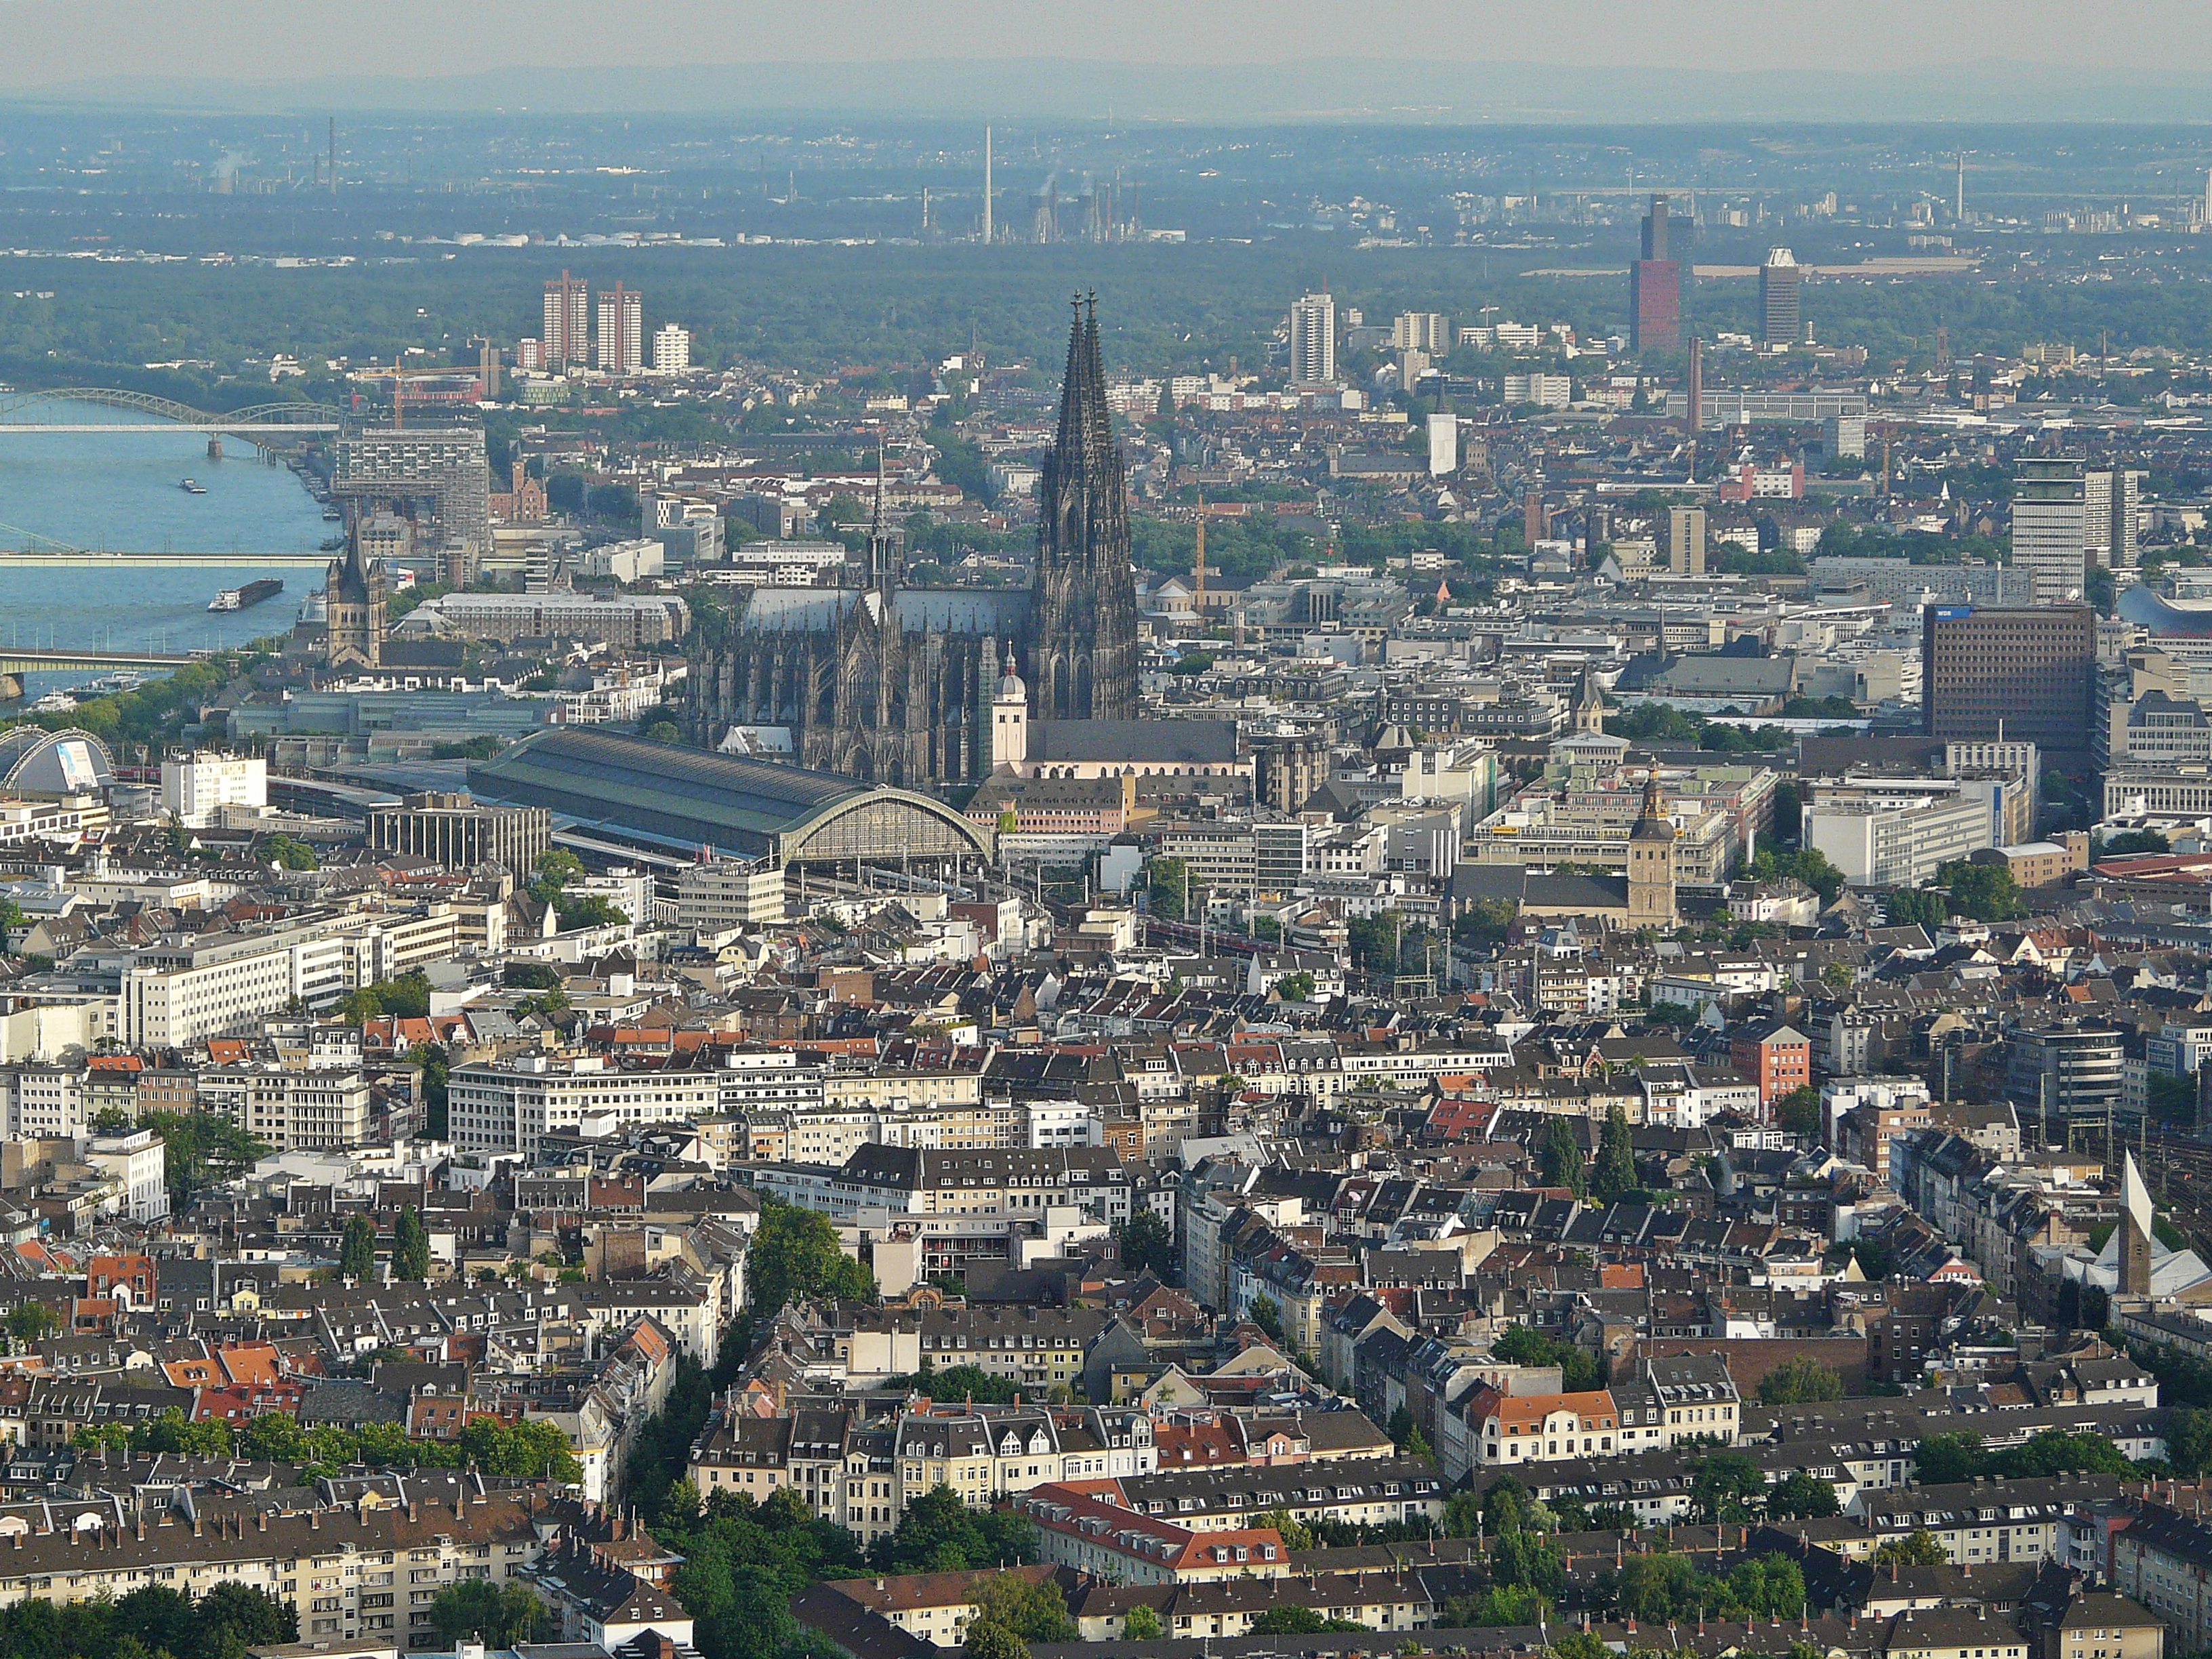 Kölner_Innenstadt_(Flight_over_Cologne) Neuwieser commons 20